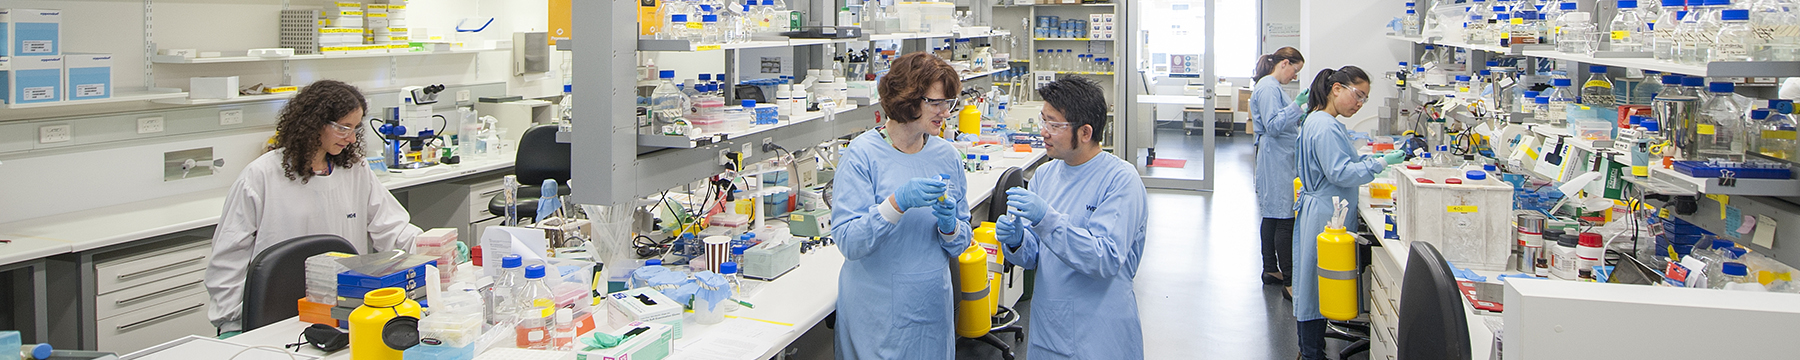 Scientists working in Associate Professor Joan Heath's laboratory